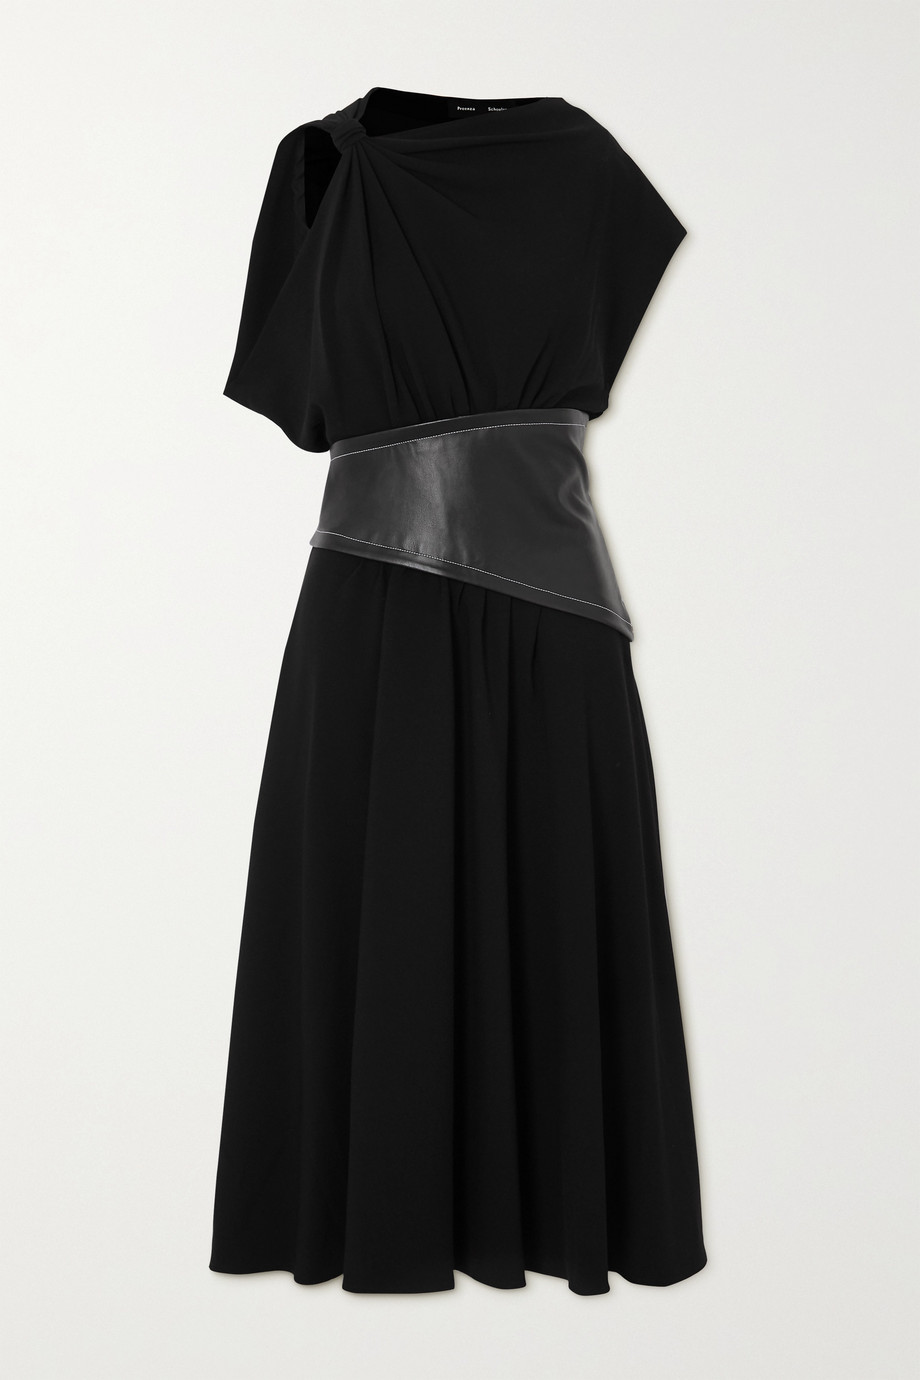 Proenza Schouler Draped crepe and leather midi dress